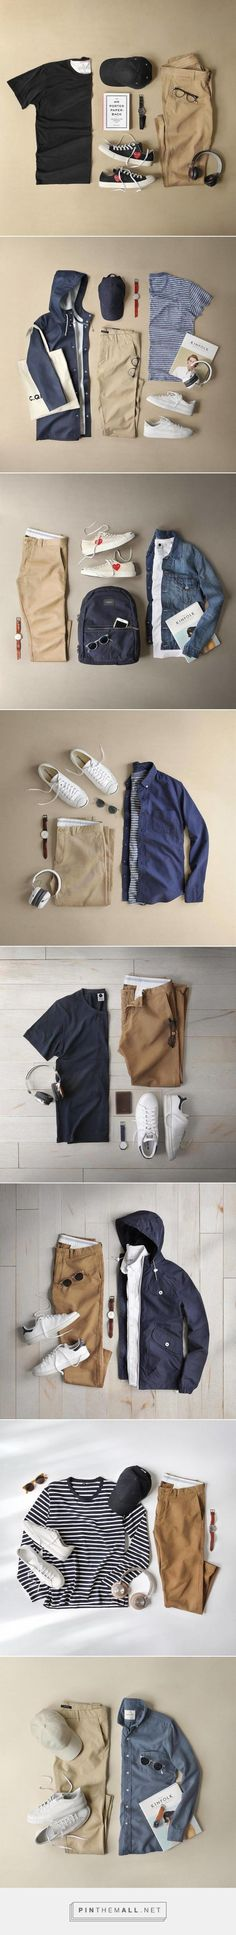 How To Wear Khaki CHINOS for men. #mensfashion #Fashion #GuideToMensClothing